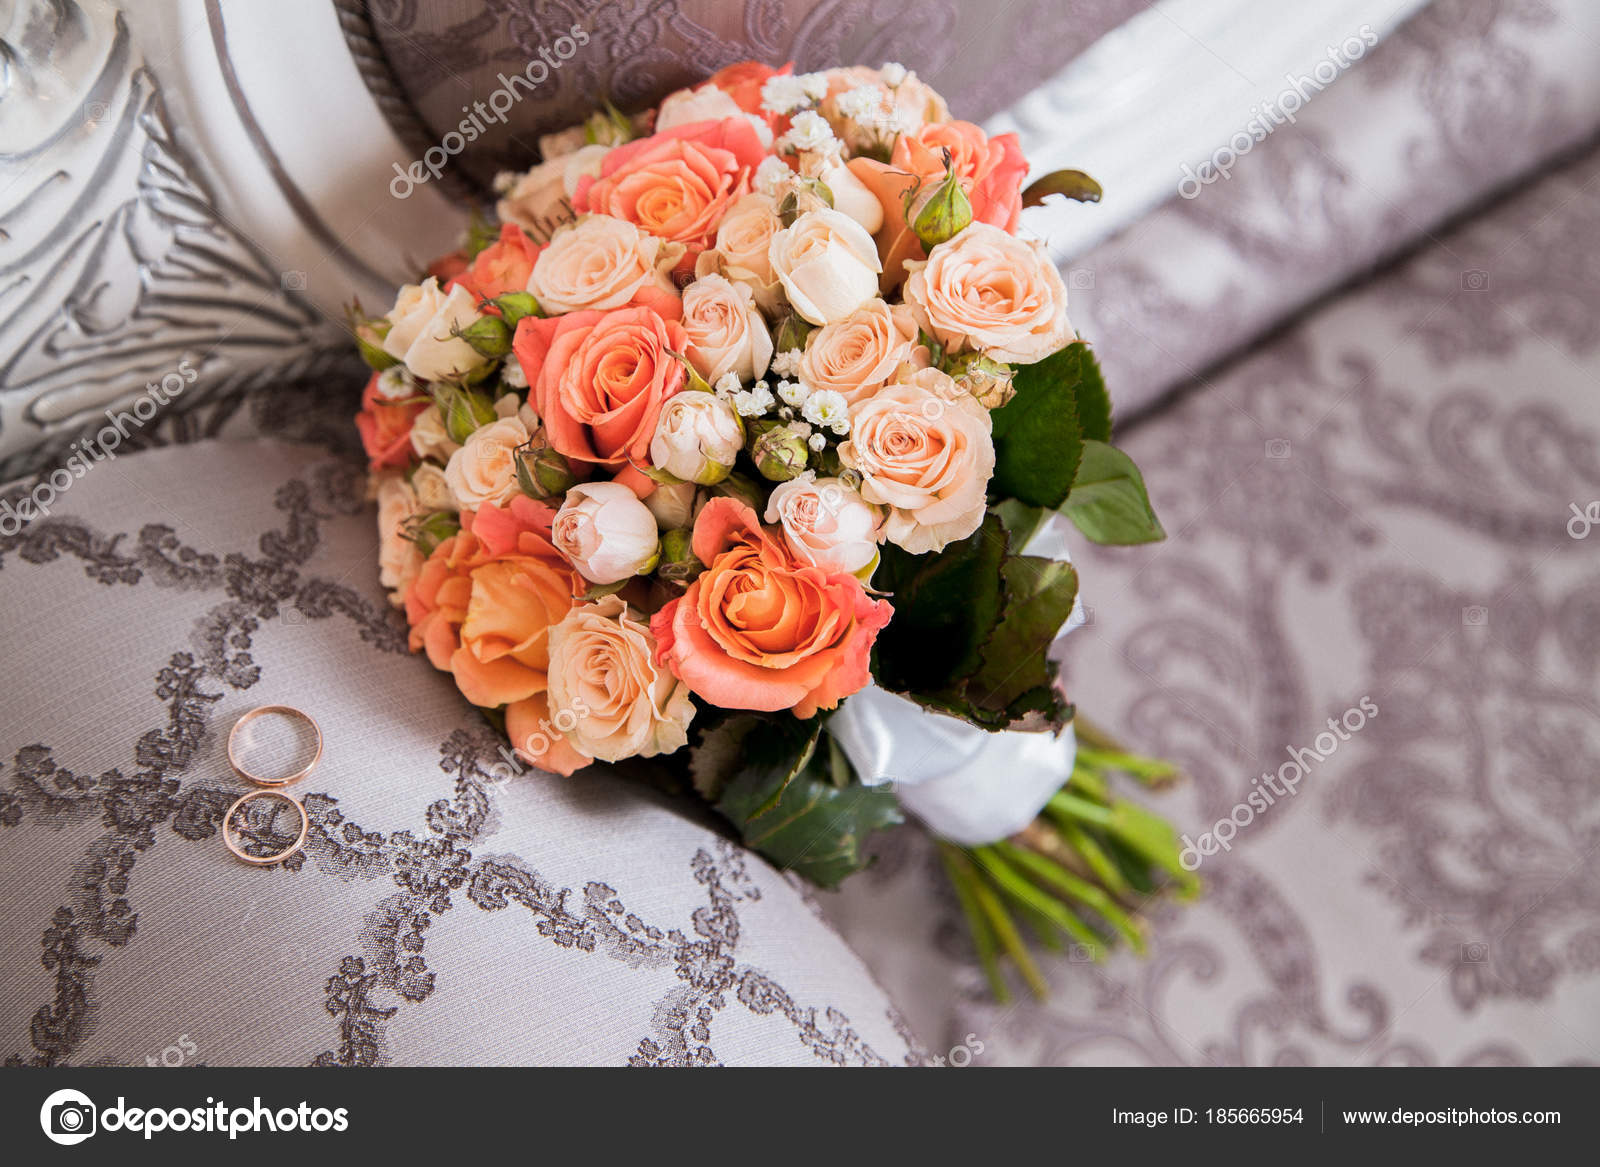 Bouquet Sposa Arancio.Wedding Bouquet Orange White Roses Wedding Rings Stock Photo